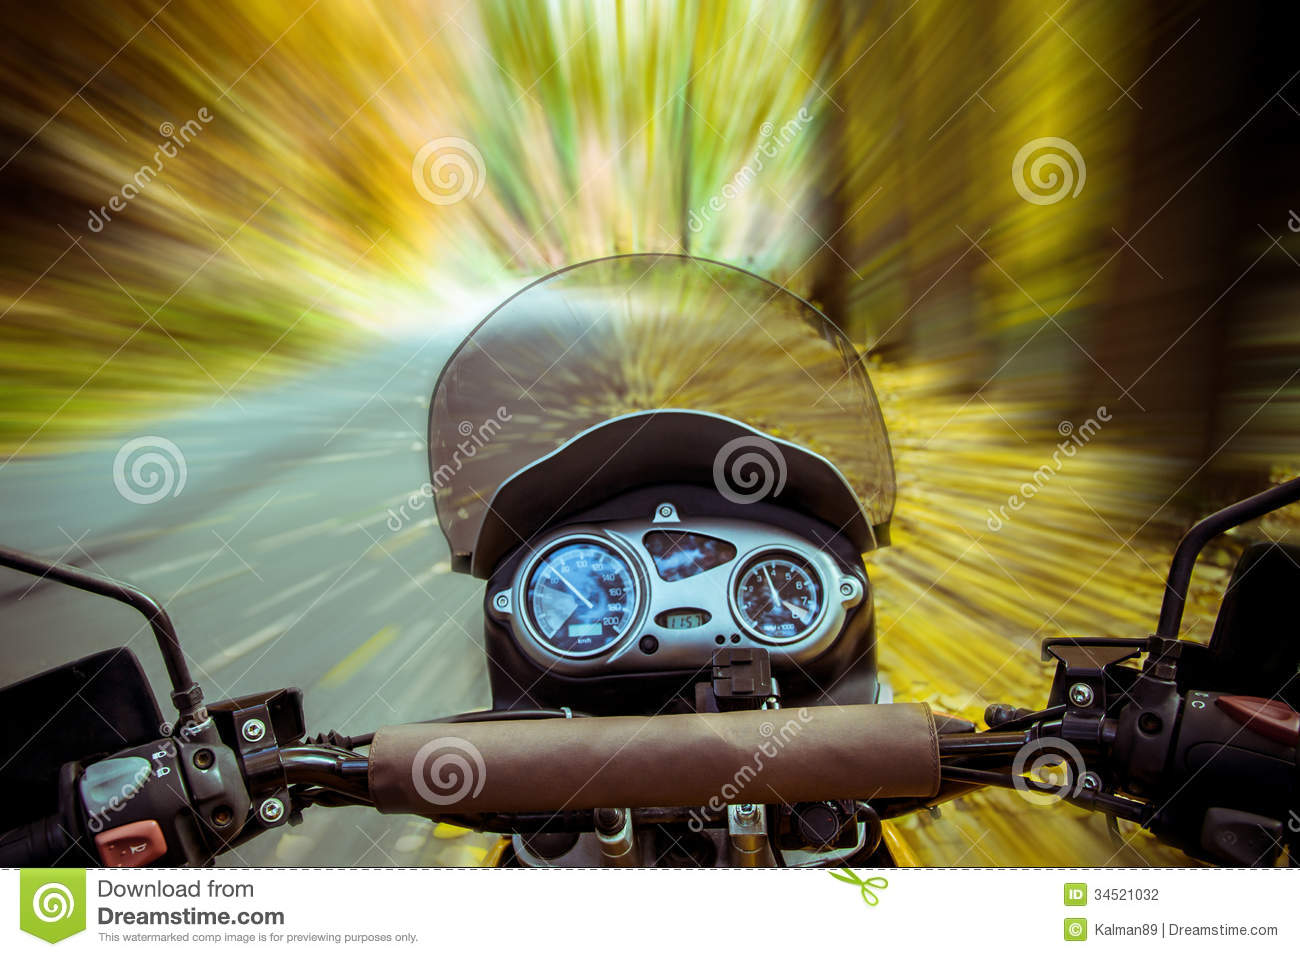 Motorbike In Motion Stock Photo Image Of Motorcycle